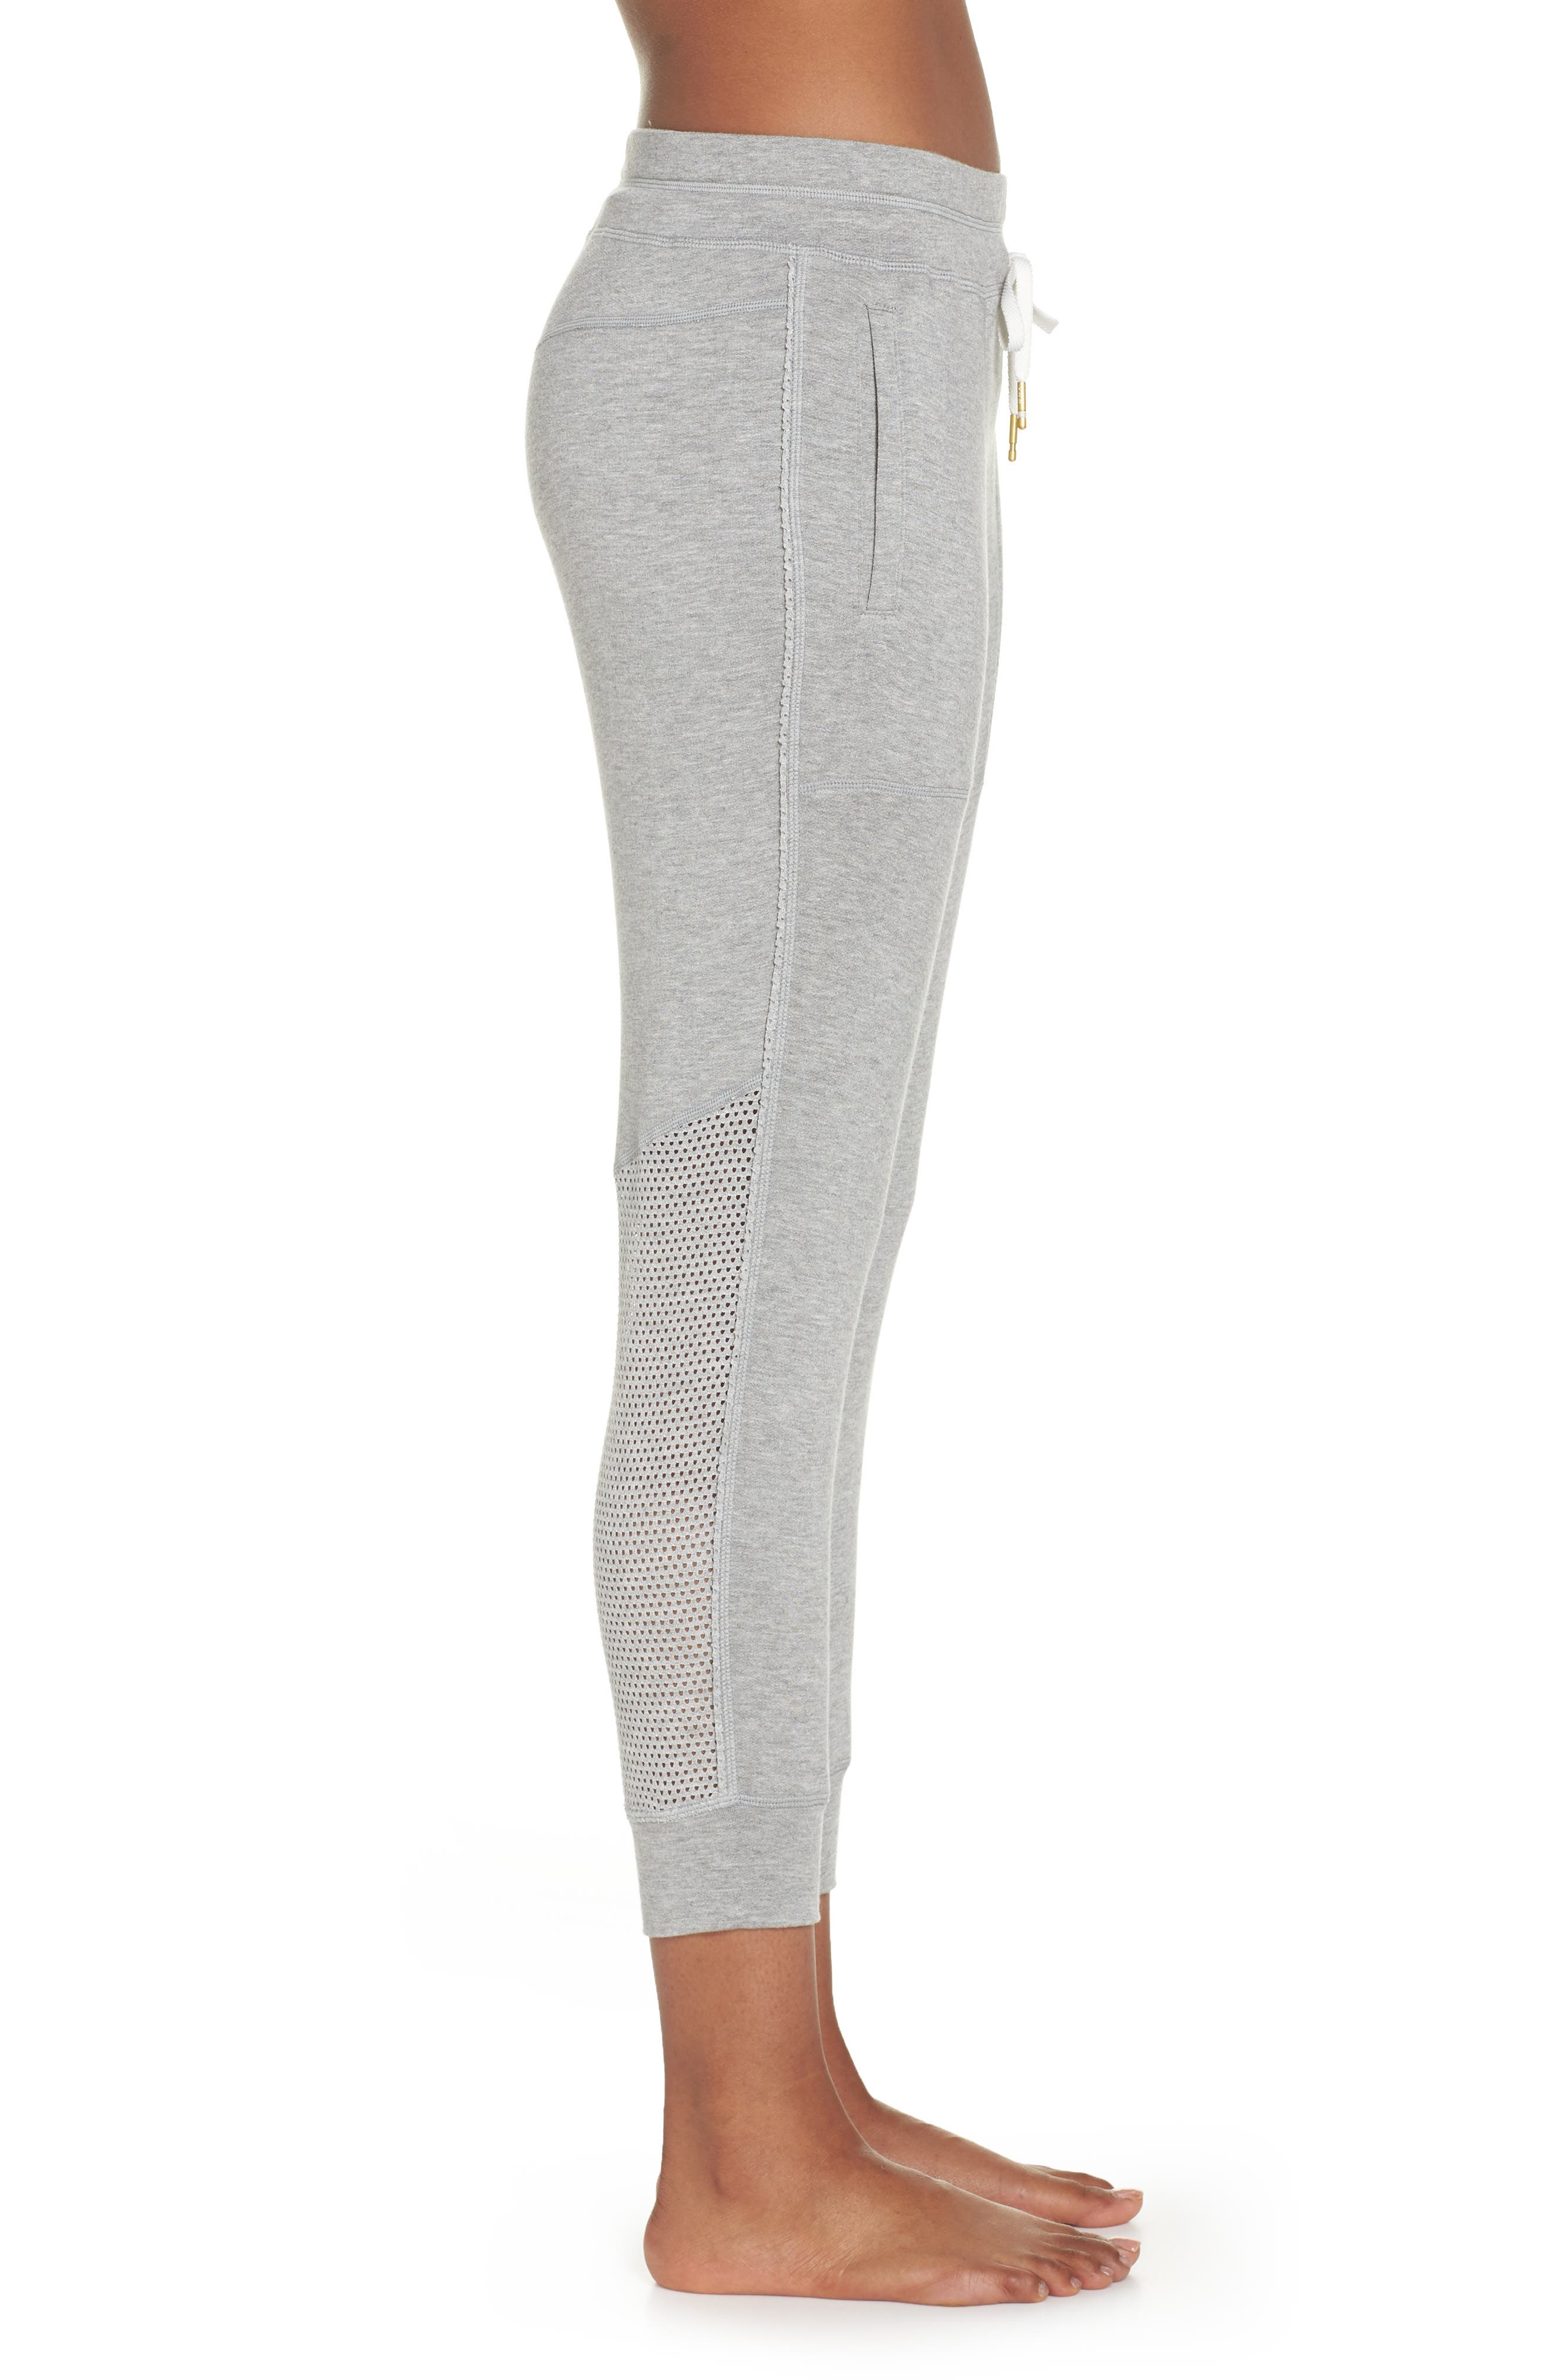 Heron Ankle Jogger Pants,                             Alternate thumbnail 3, color,                             Heather Grey